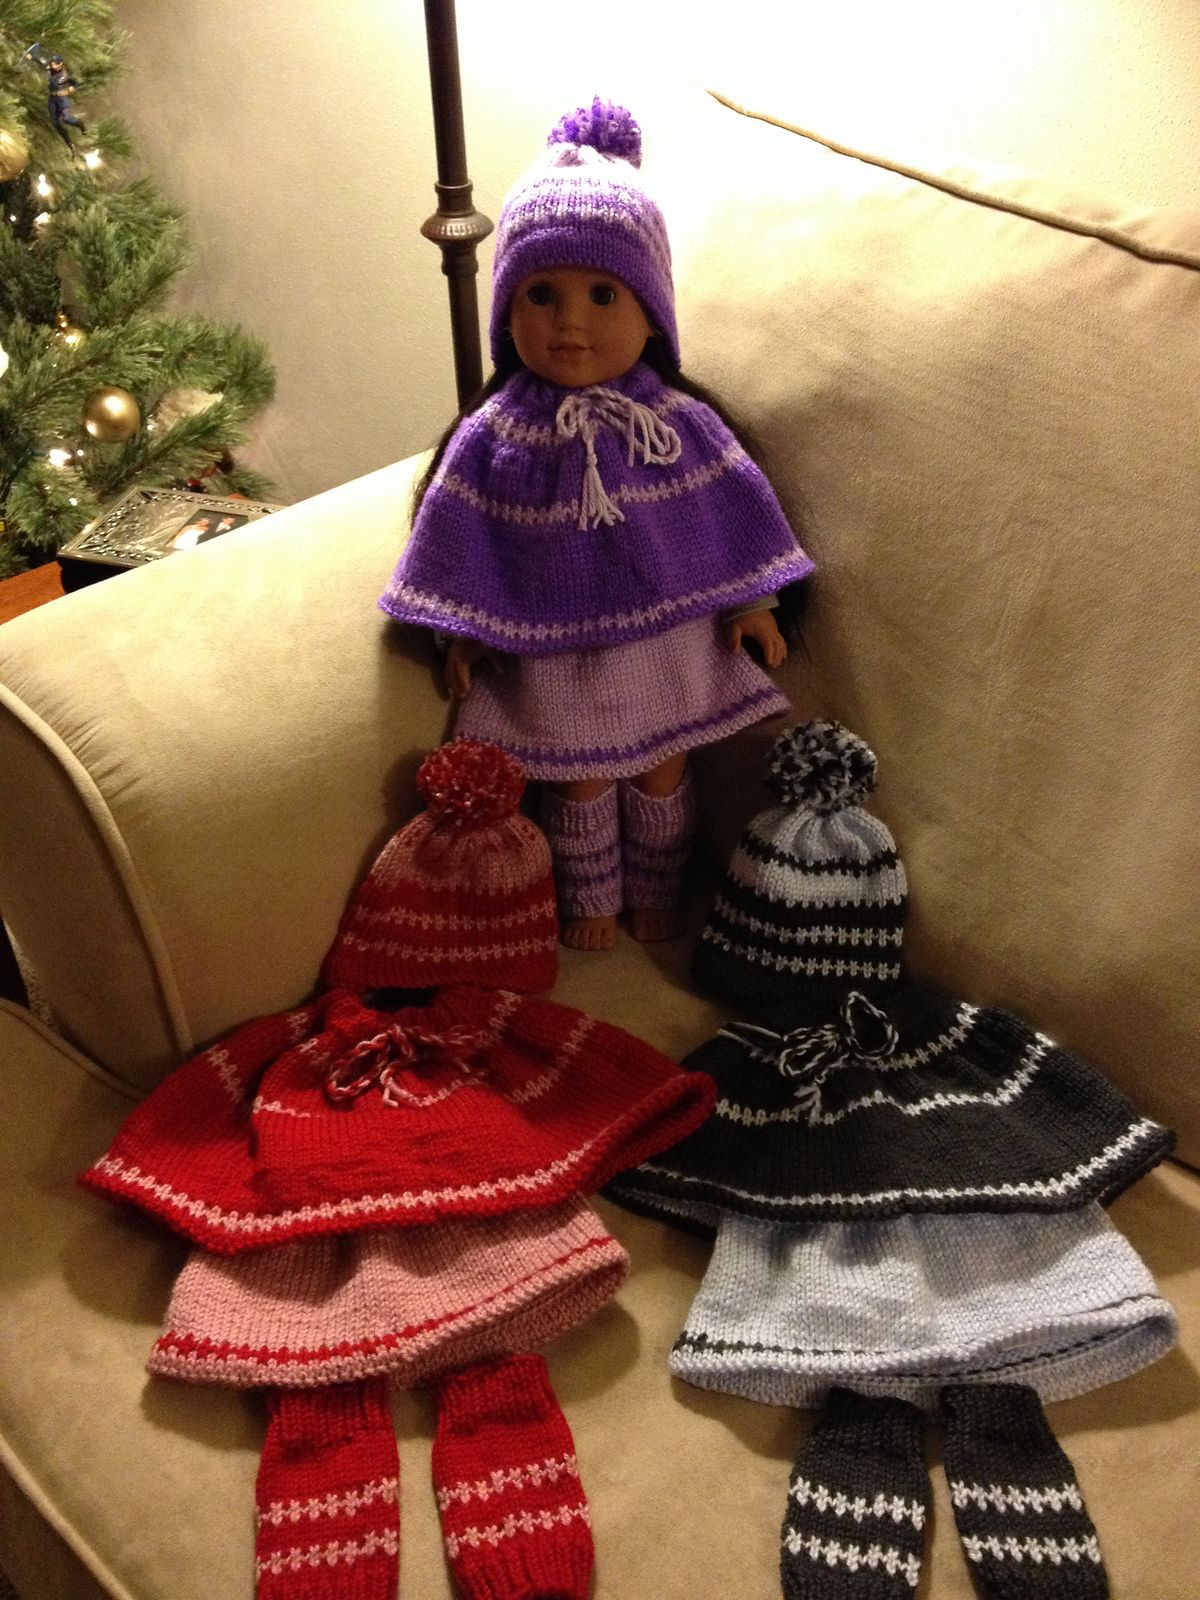 Ravelry: Doll Christmas Carol Outfit by Elaine Phillips